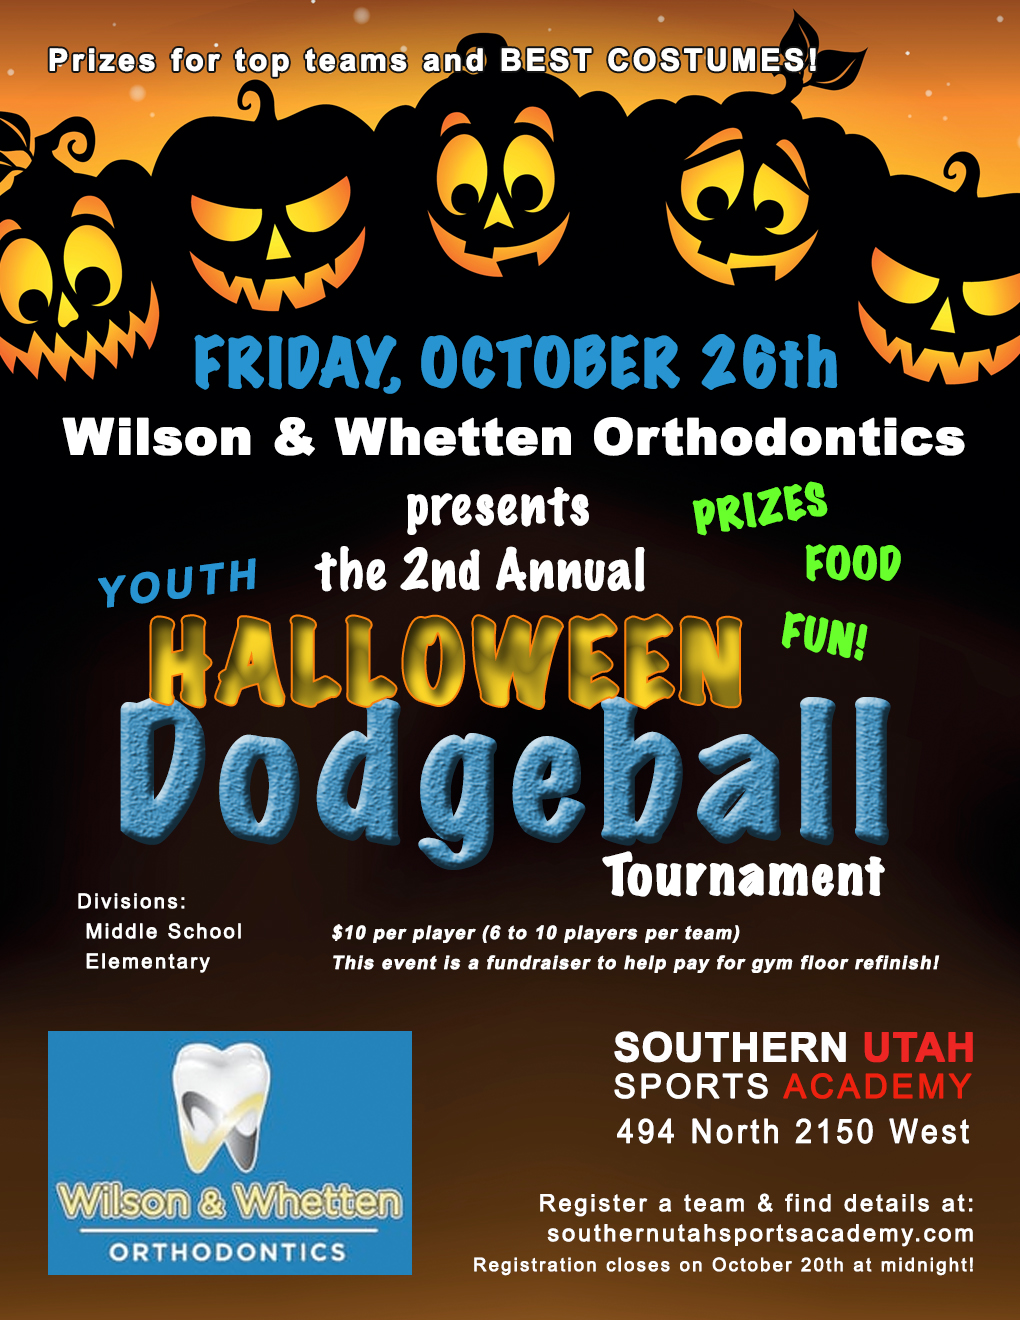 halloween dodgeball tournament